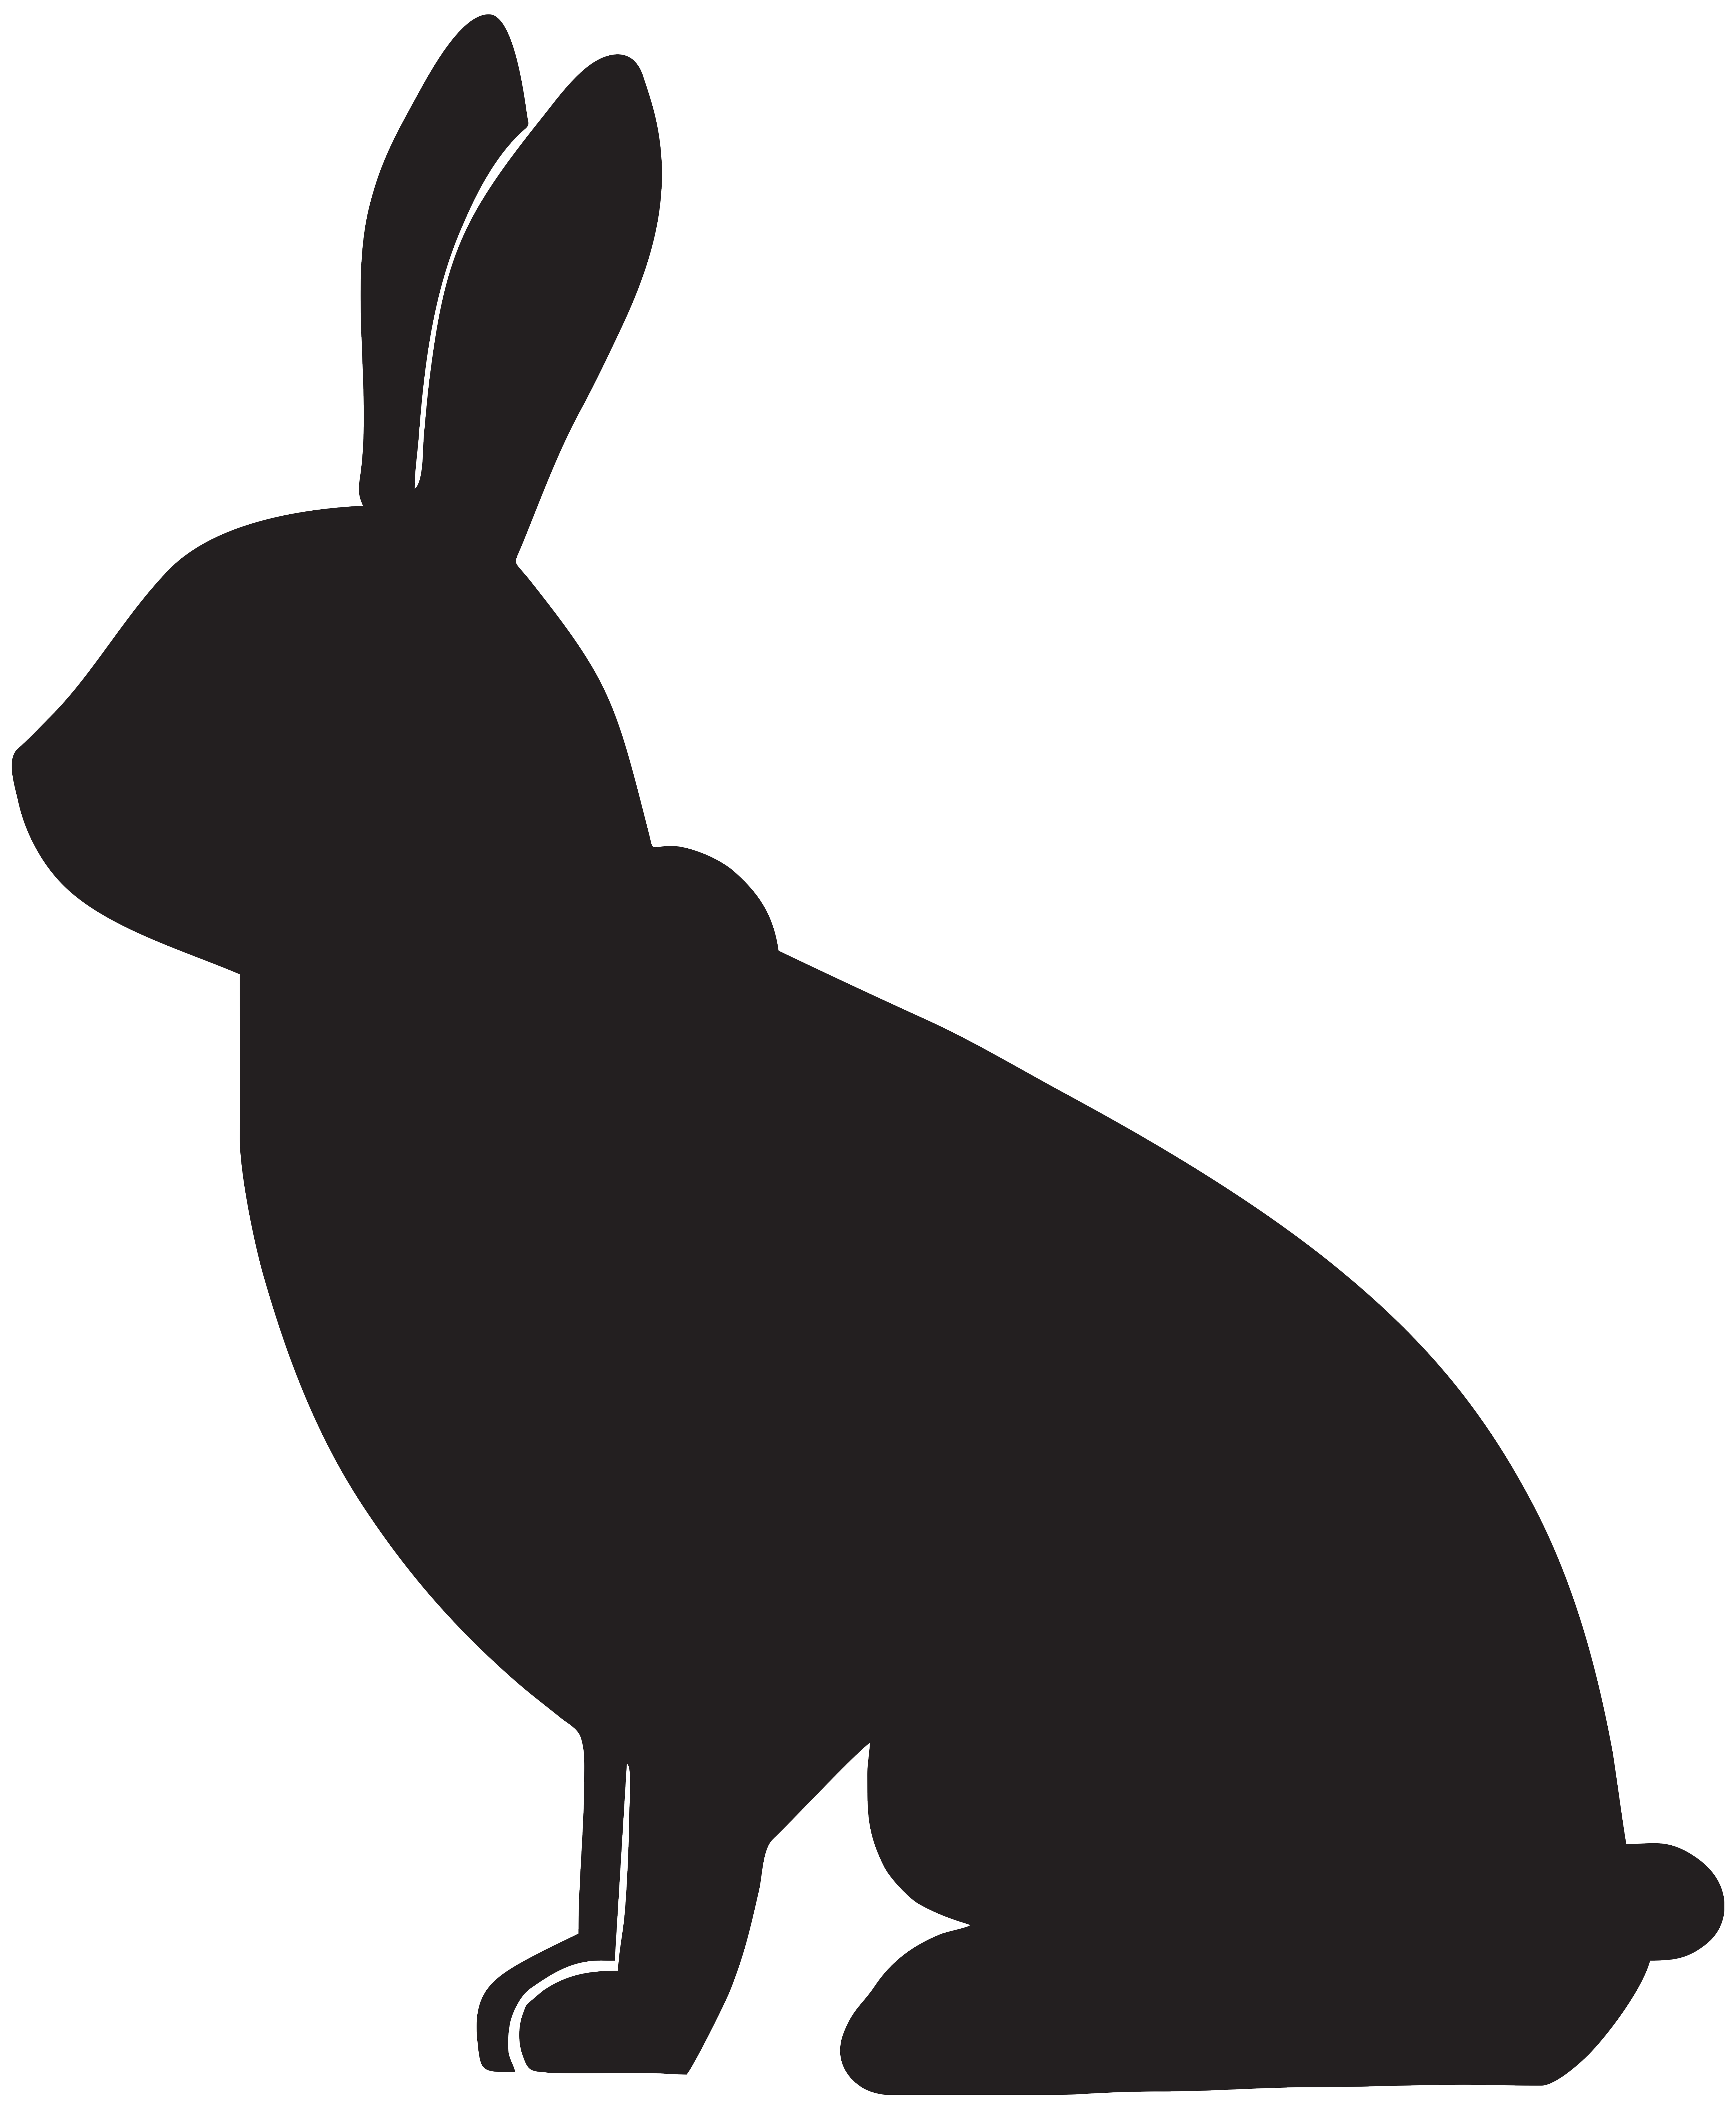 rabbit silhouette clipart best bunny clipart free cute bunny clipart images